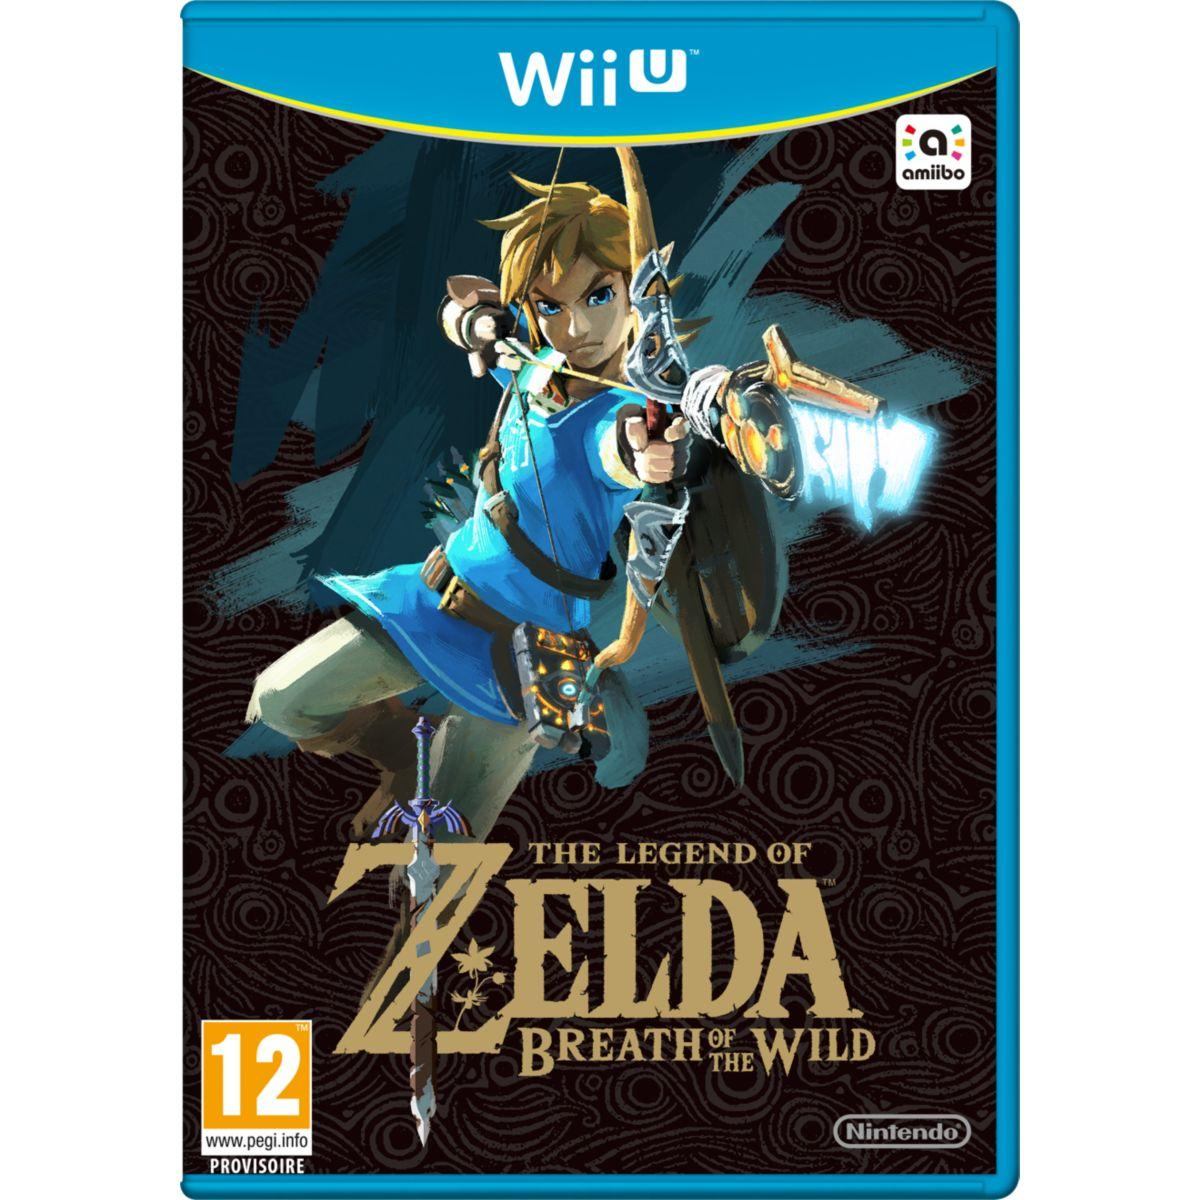 Jeu nintendo wii u the legend of zelda - breath of the wild - 2% de remise immédiate avec le code : cool2 (photo)